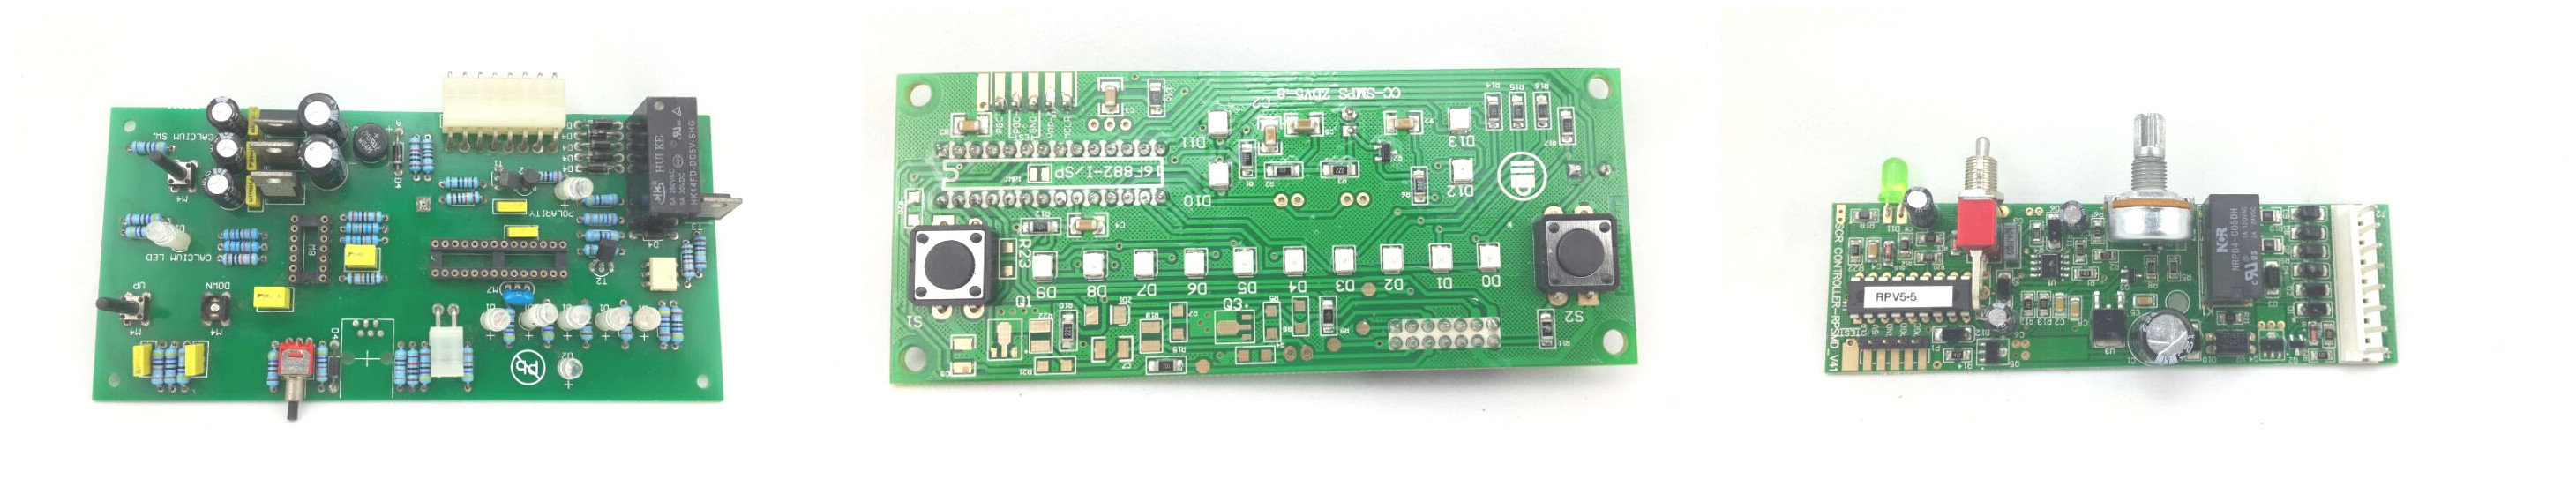 Pcb Quote Smallmedium Volume Pcb Assembly